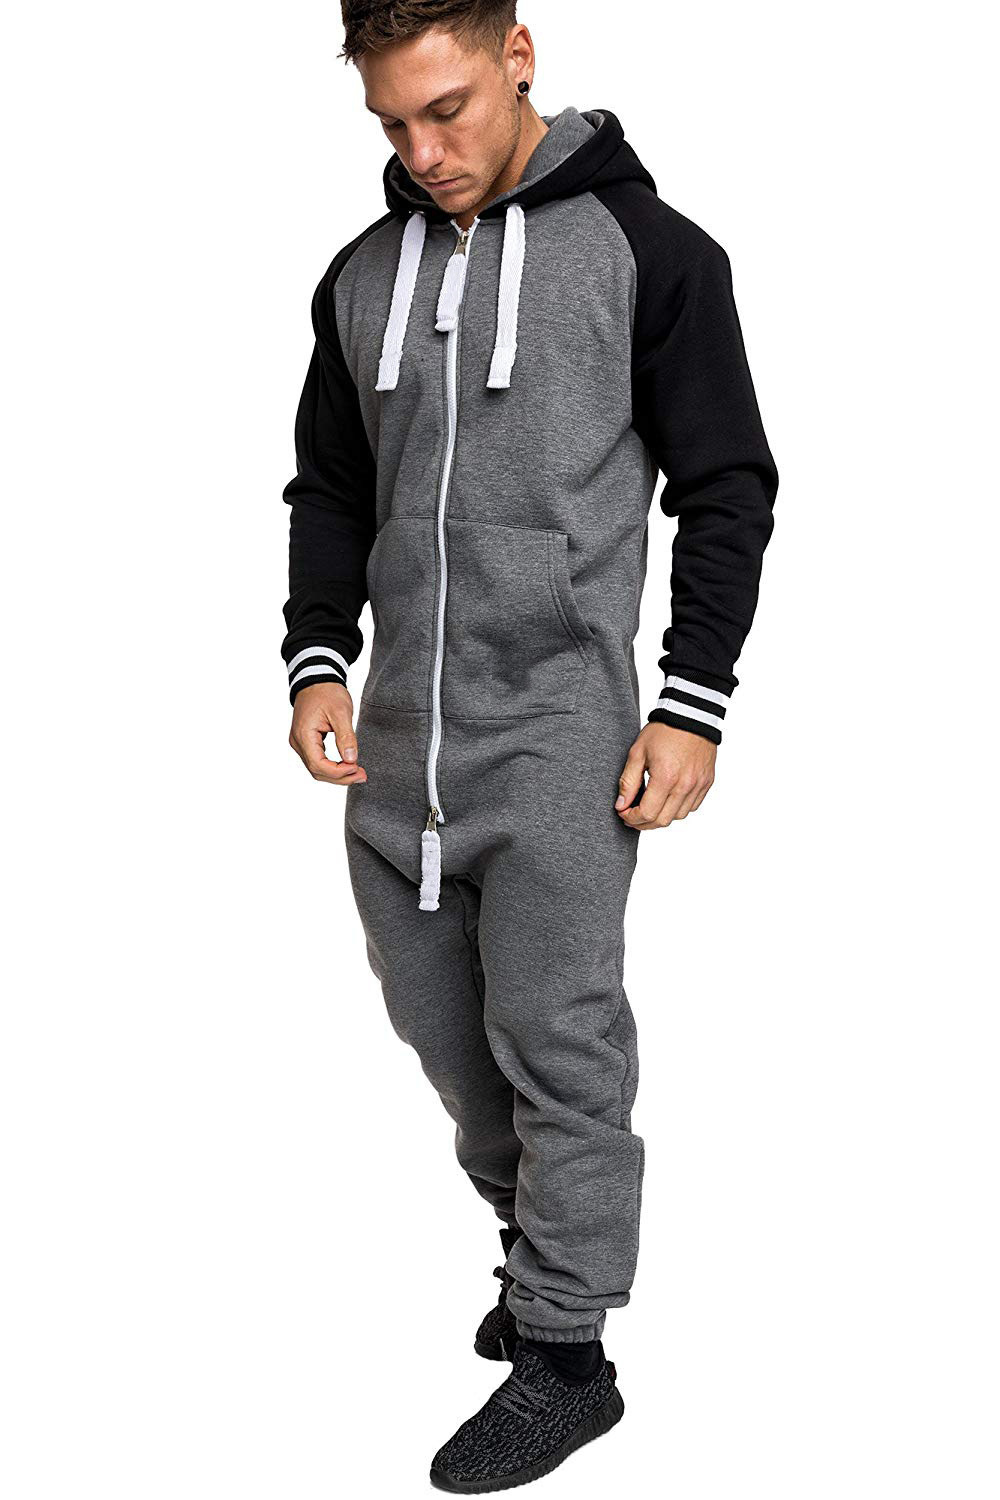 Casual Autumn Hooded Tracksuit Jumpsuit Long Pants Romper For Male Mens Fleece warm Overalls Sweatshirts Male Streetwear X9126 29